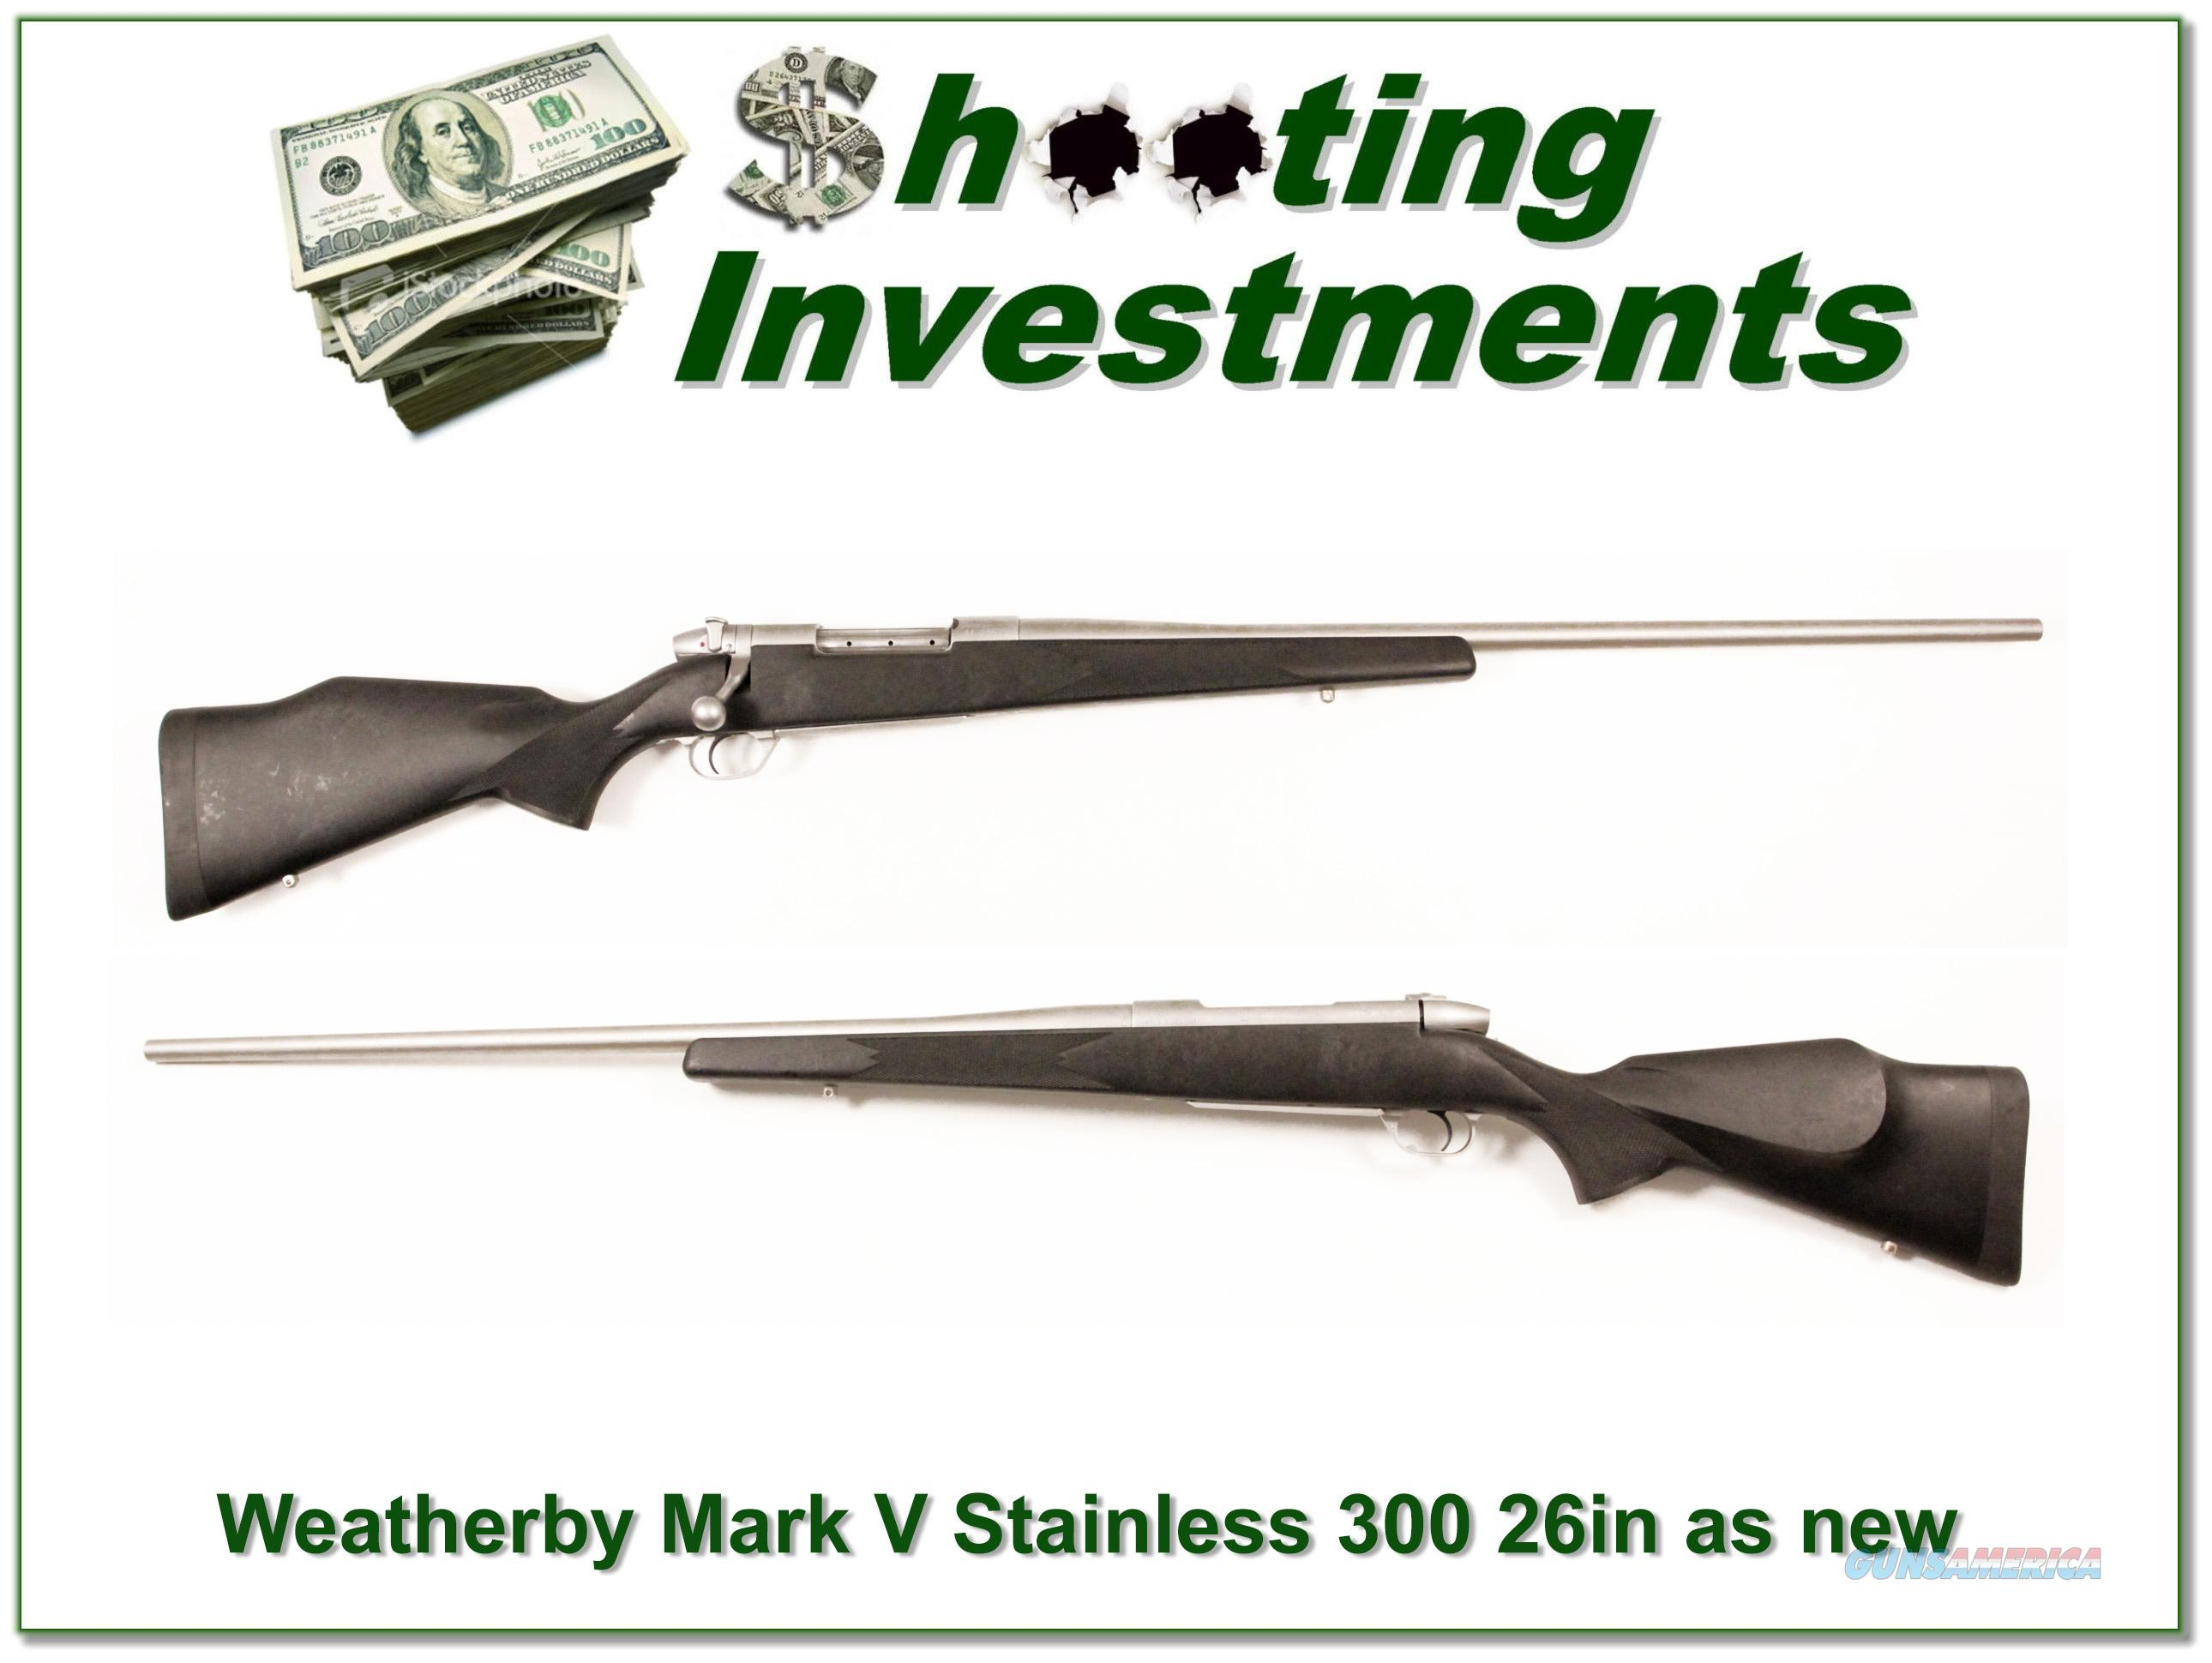 Weatherby Mark V USA made Stainless 300 Wthy Mag near new  Guns > Rifles > Weatherby Rifles > Sporting